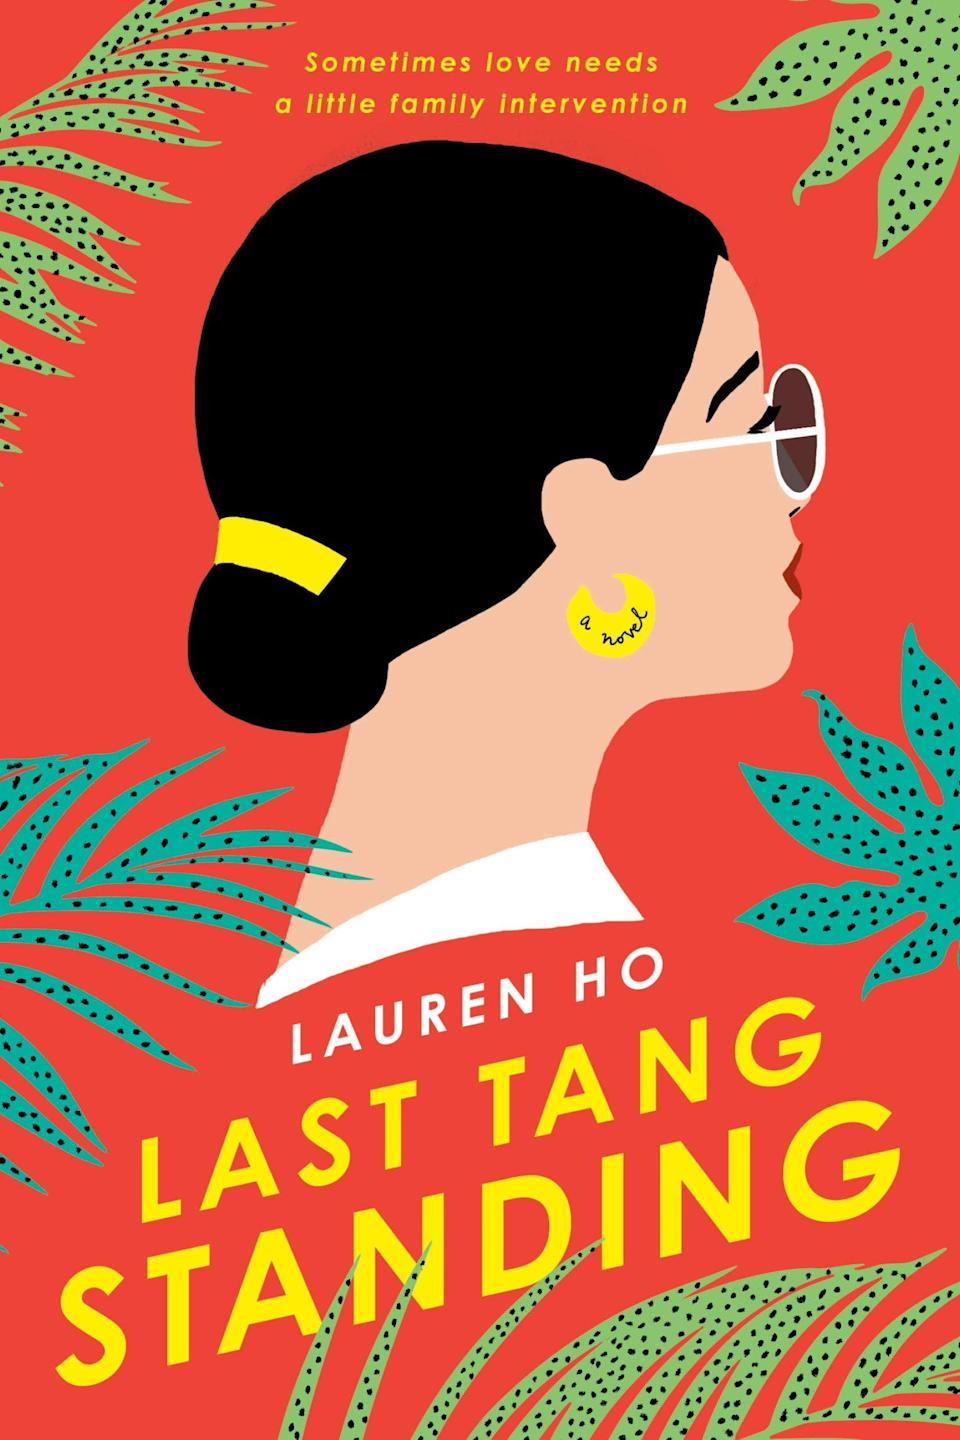 <p>Lauren Ho's <span><strong>Last Tang Standing</strong></span> is perfect for Leos who gravitate towards the bold, creative, and flashy - think <strong>Crazy Rich Asians</strong> with a love-triangle twist! Andrea Tang is as confident and ambitious as any Leo, a 30-something lawyer with a great life, all except for her lack of a love life. That, of course, will not stand with her meddling Chinese-Malaysian family. When she meets a charming, wealthy businessman, it seems like all her problems are over, but her irritating office rival keeps getting in the way. It's a rom-com perfect for a Leo: a story of passionate, ambitious people who find just enough chaos in each other to upend their carefully-laid plans.</p>